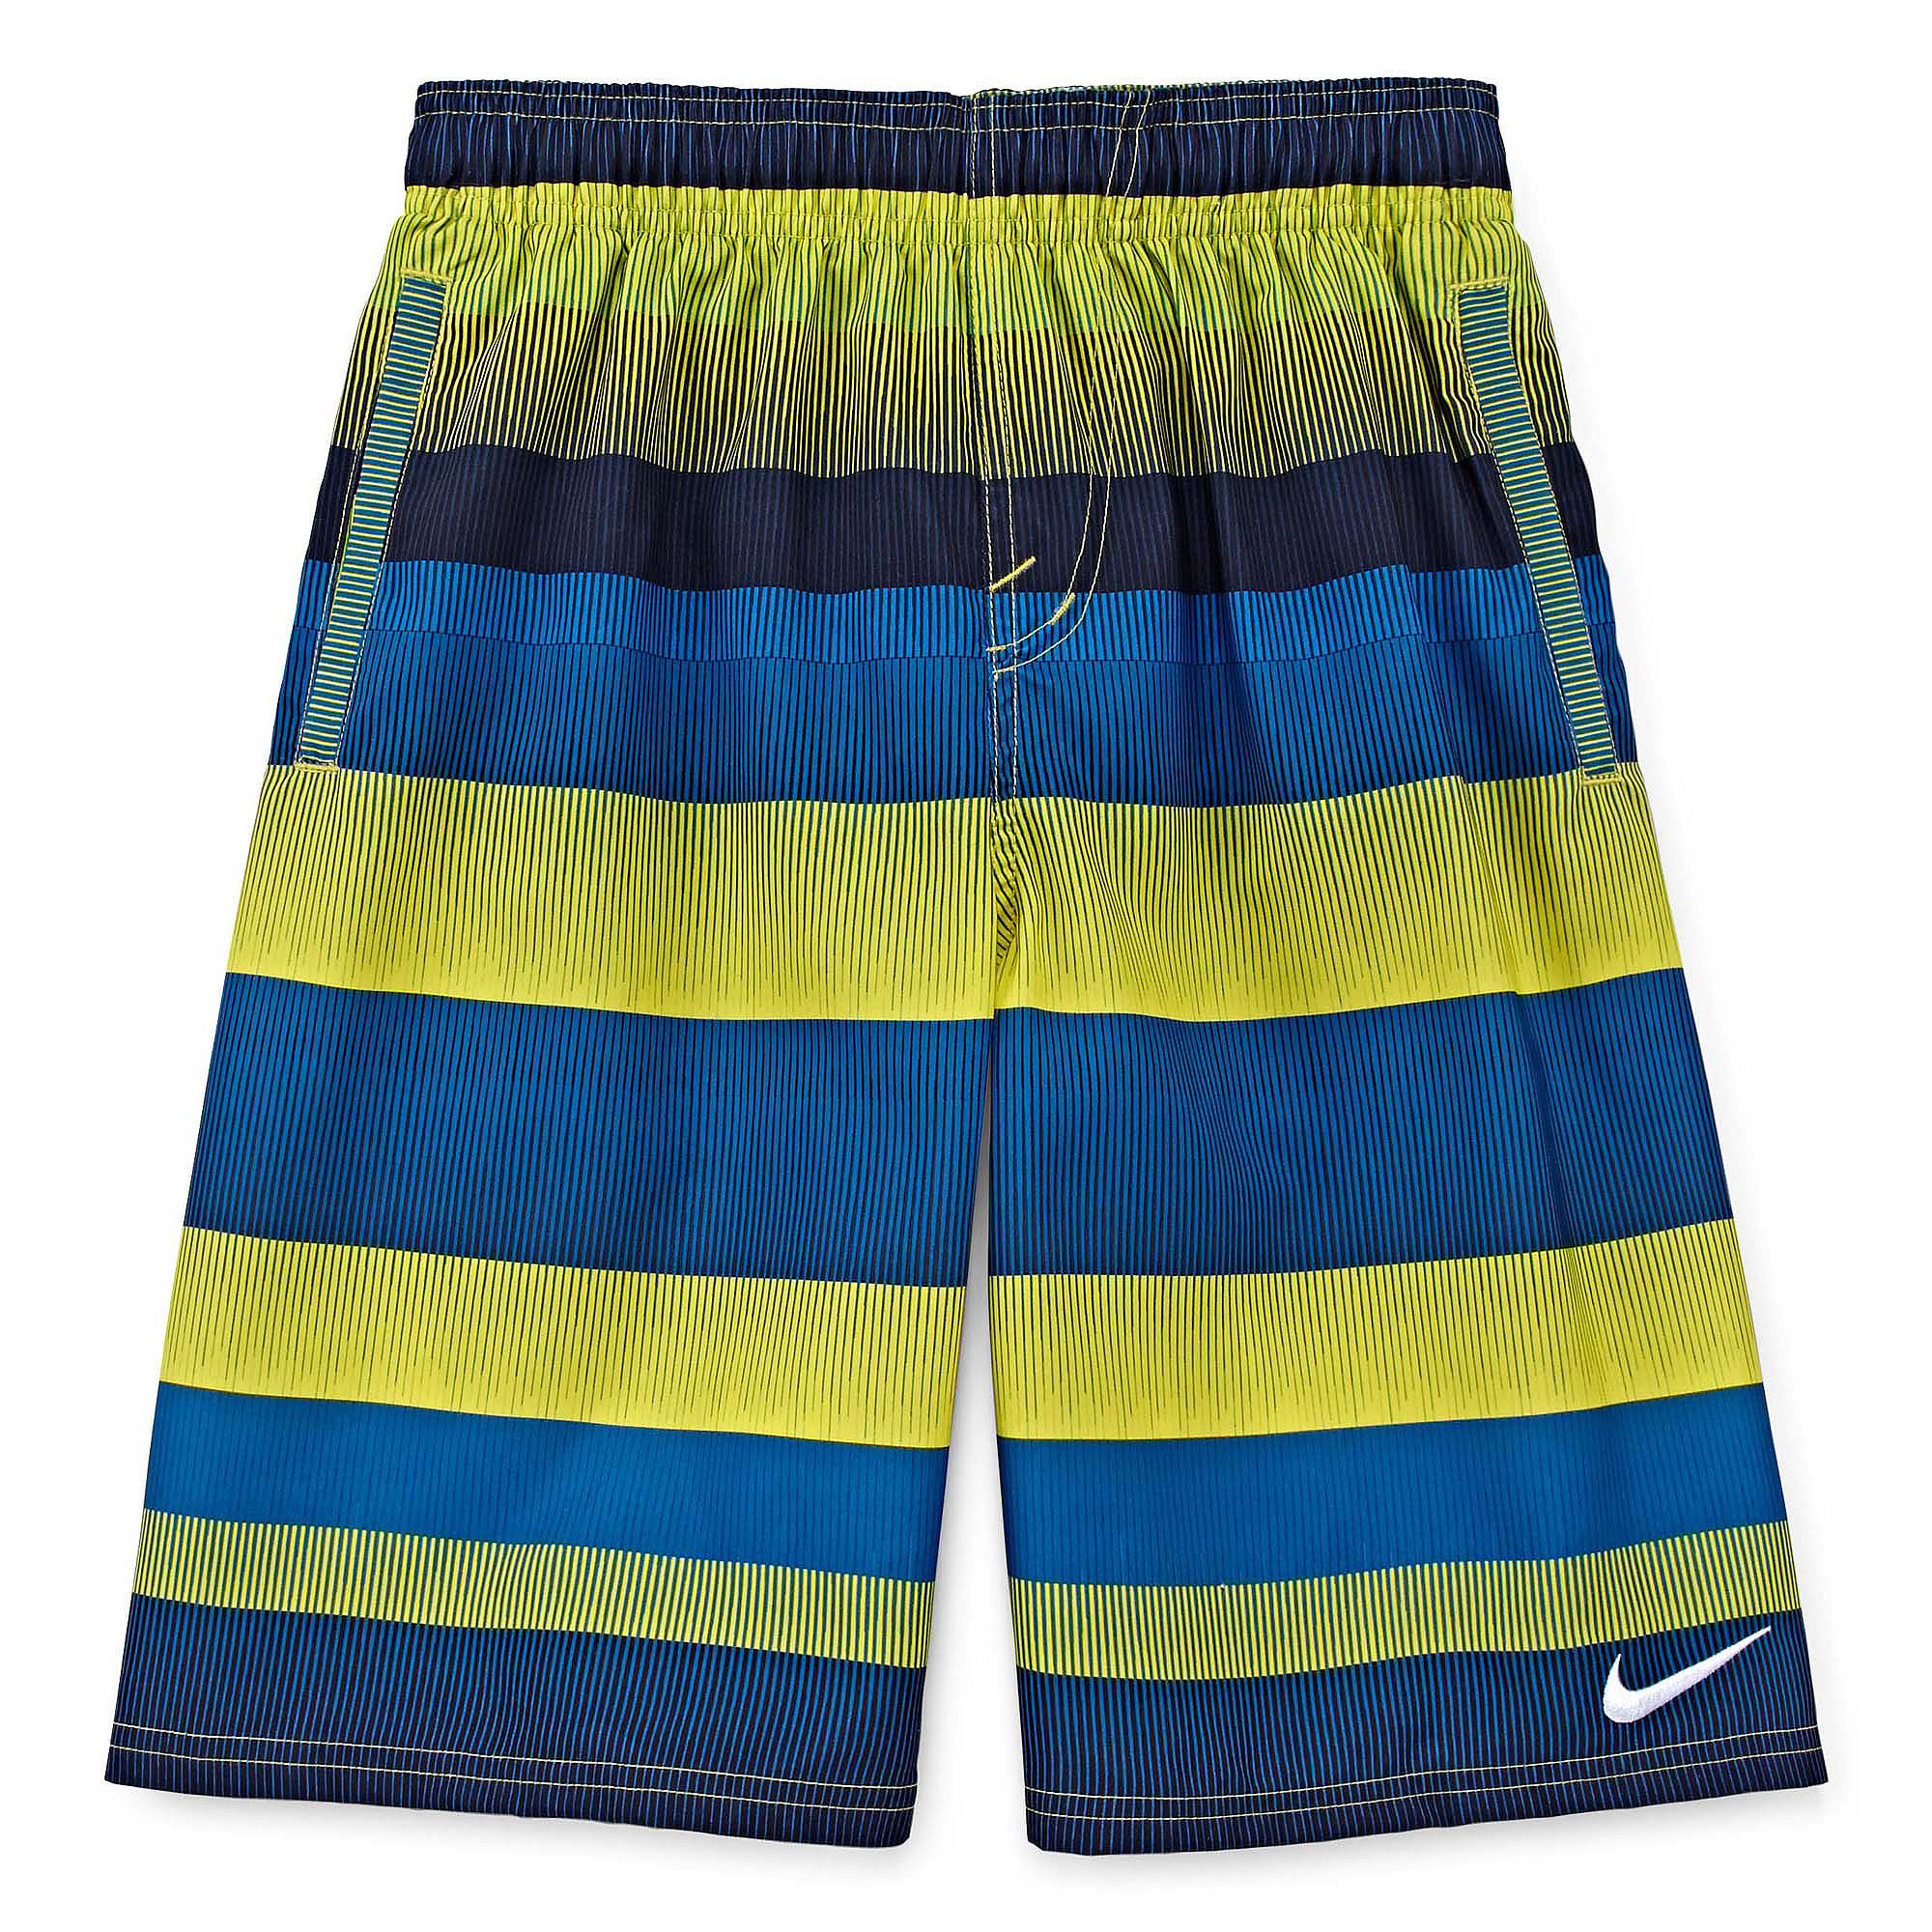 fc4b93af39 UPC 053474725856 product image for Nike Optic Shift Volley Swim Trunks -  Boys 8-20 ...